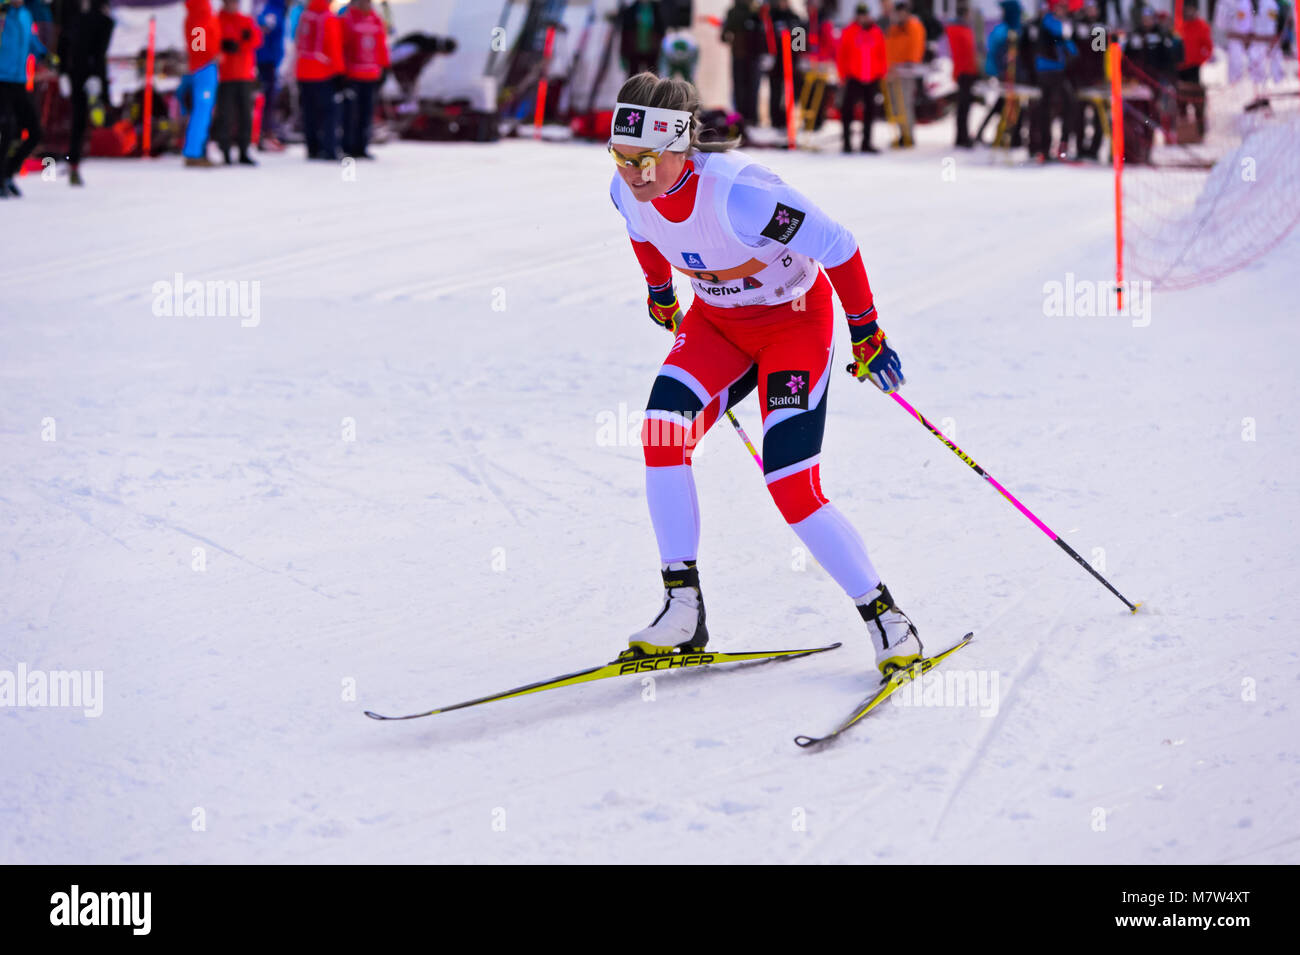 Cross country skier Mari Eide, Norway, at the 38. Engadin Skimarathon night sprint, 9 March 2018, St. Moritz, Switzerland - Stock Image